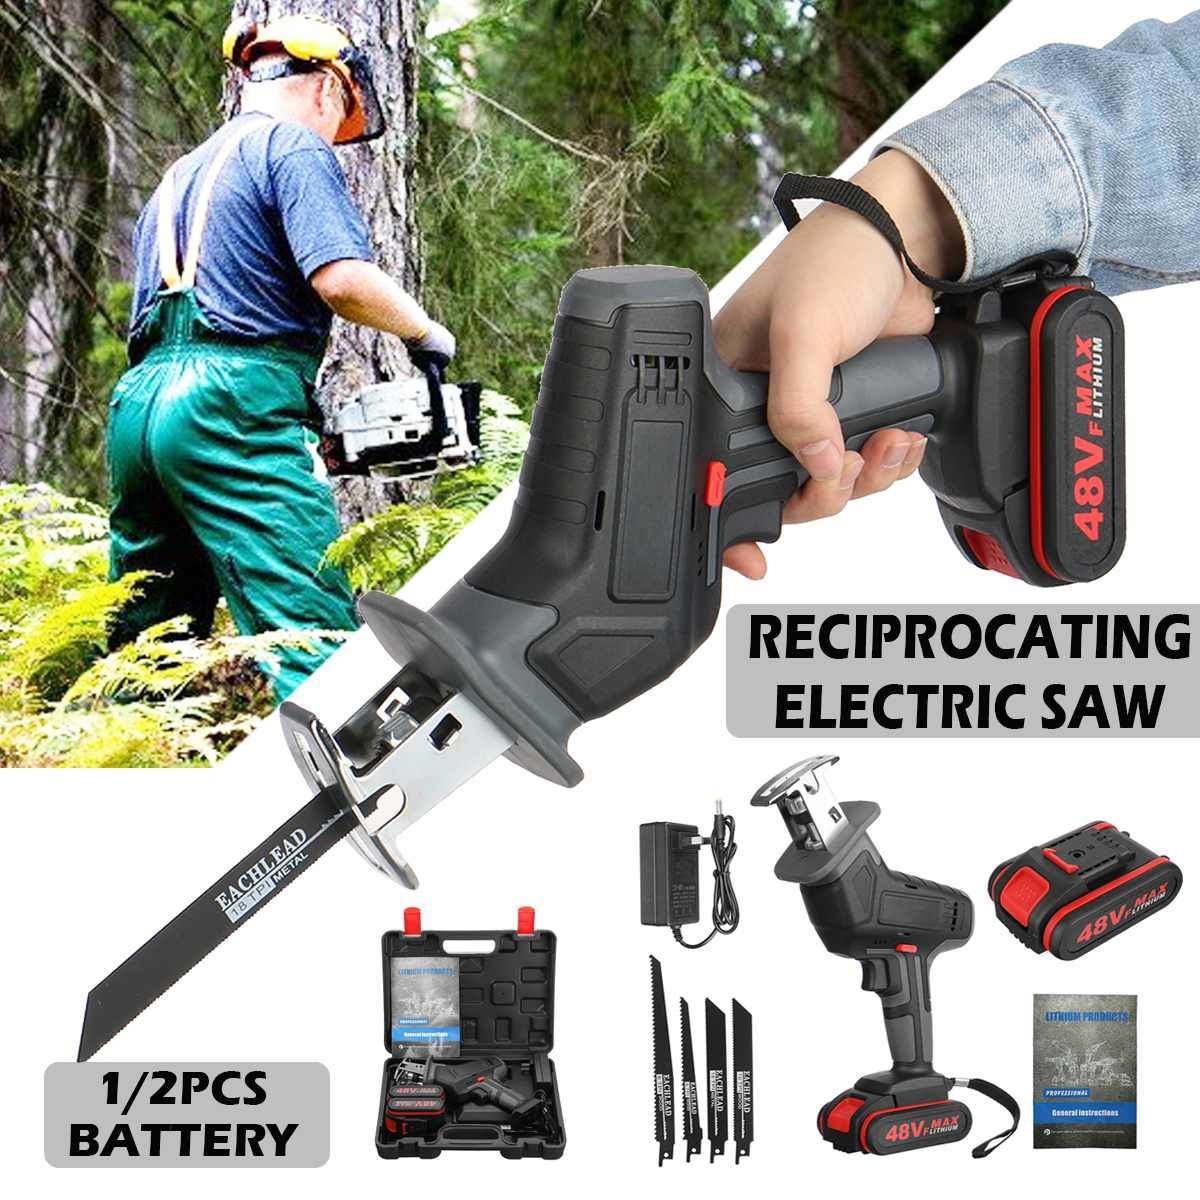 48V Cordless Reciprocating Saw Kit Outdoor Electric Saw With 4PCS Blades For Wood Metal Cutting Power Tools